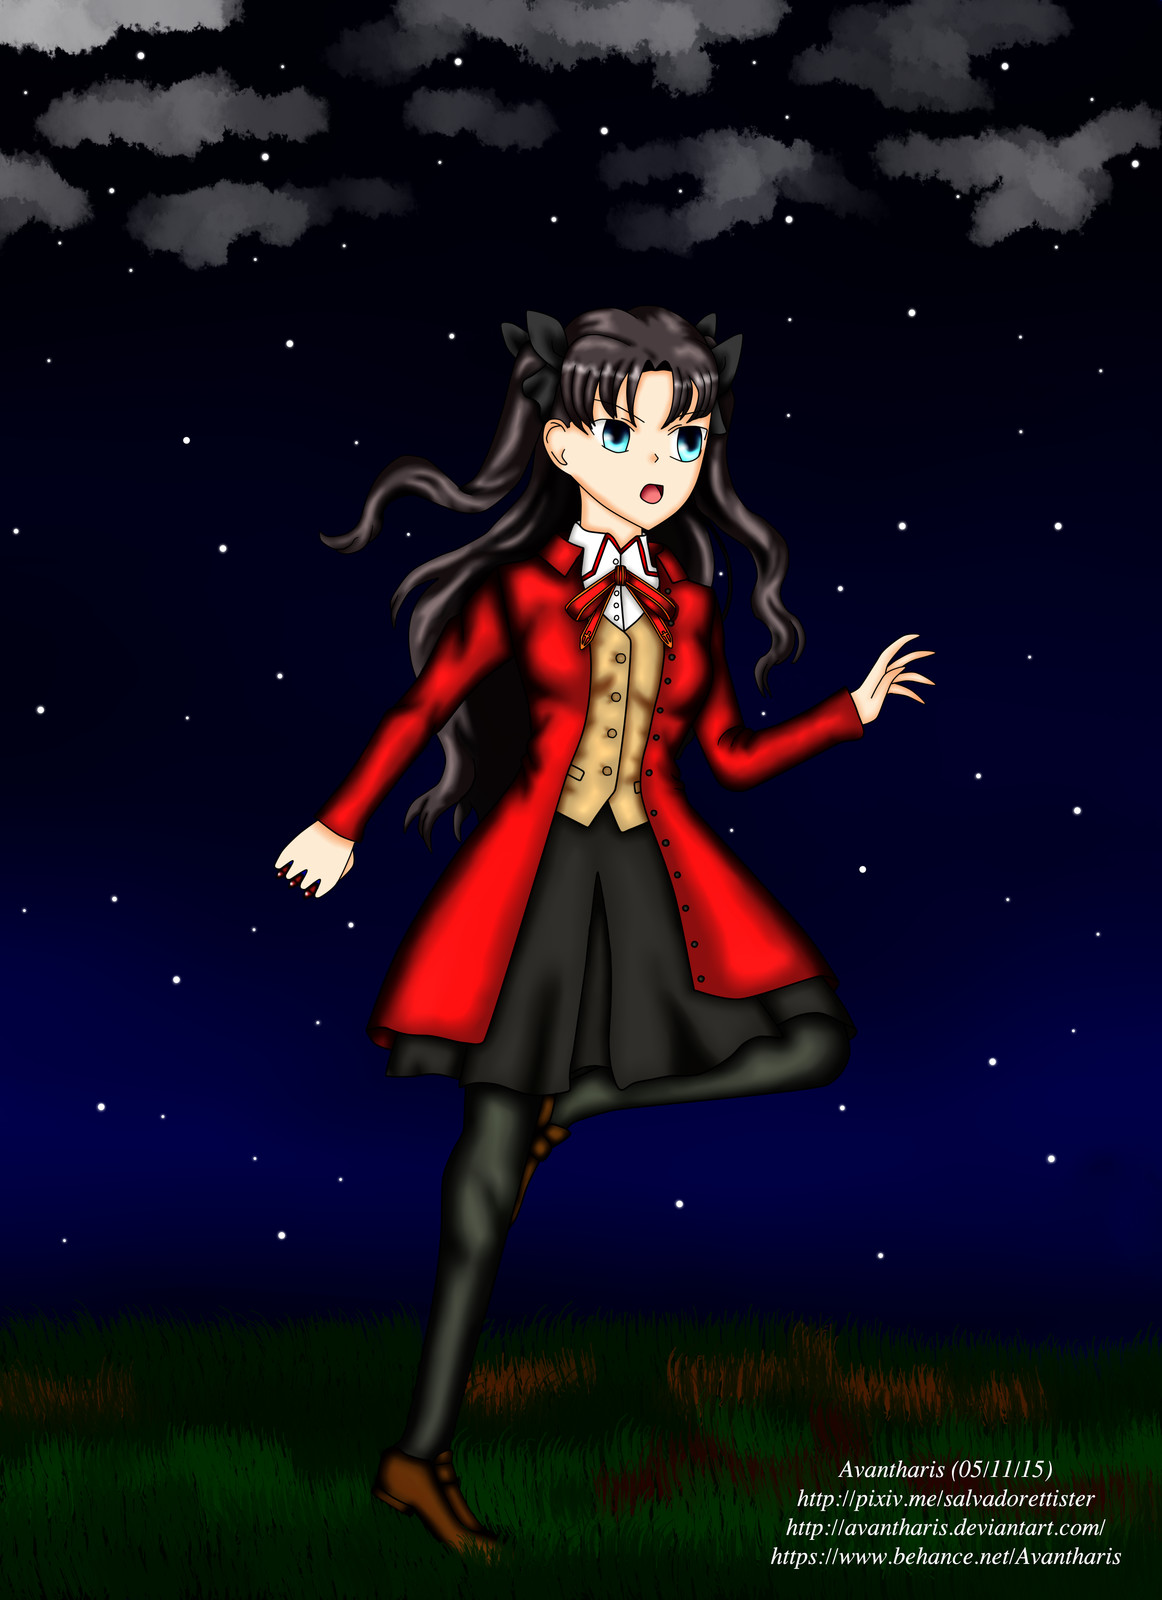 Rin Tousaka from Fate/Stay Night